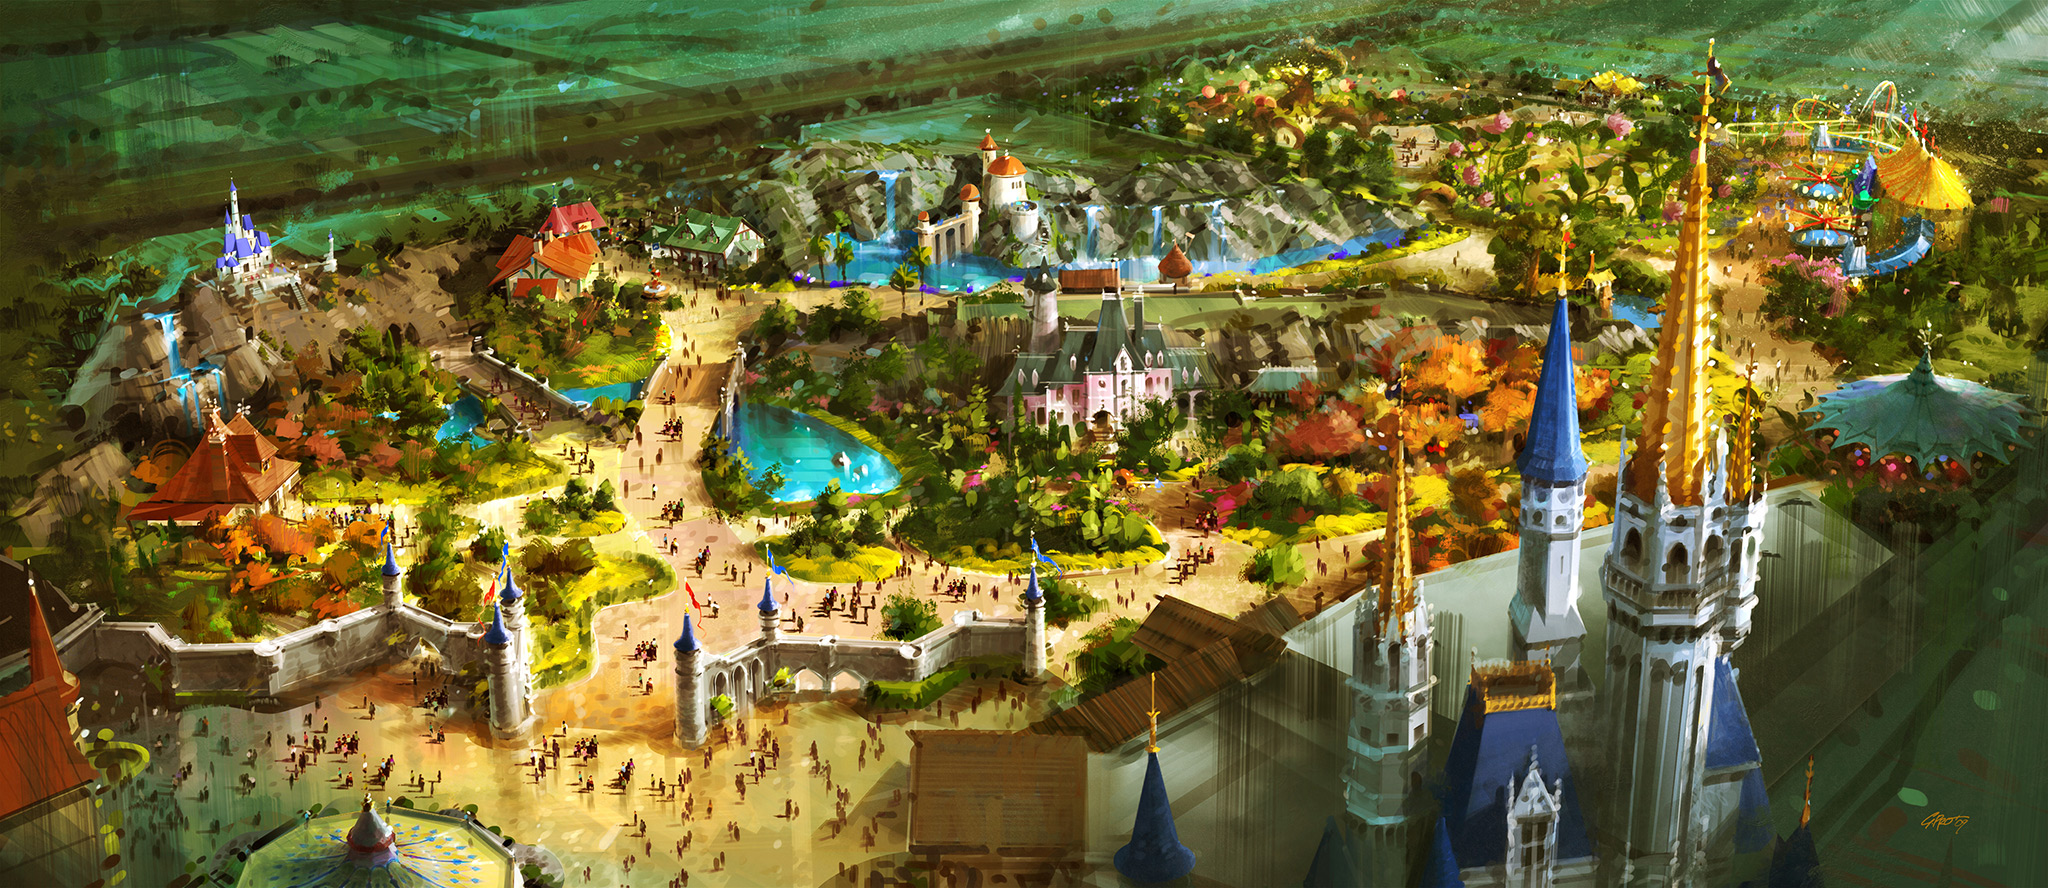 New Fantasyland concept art